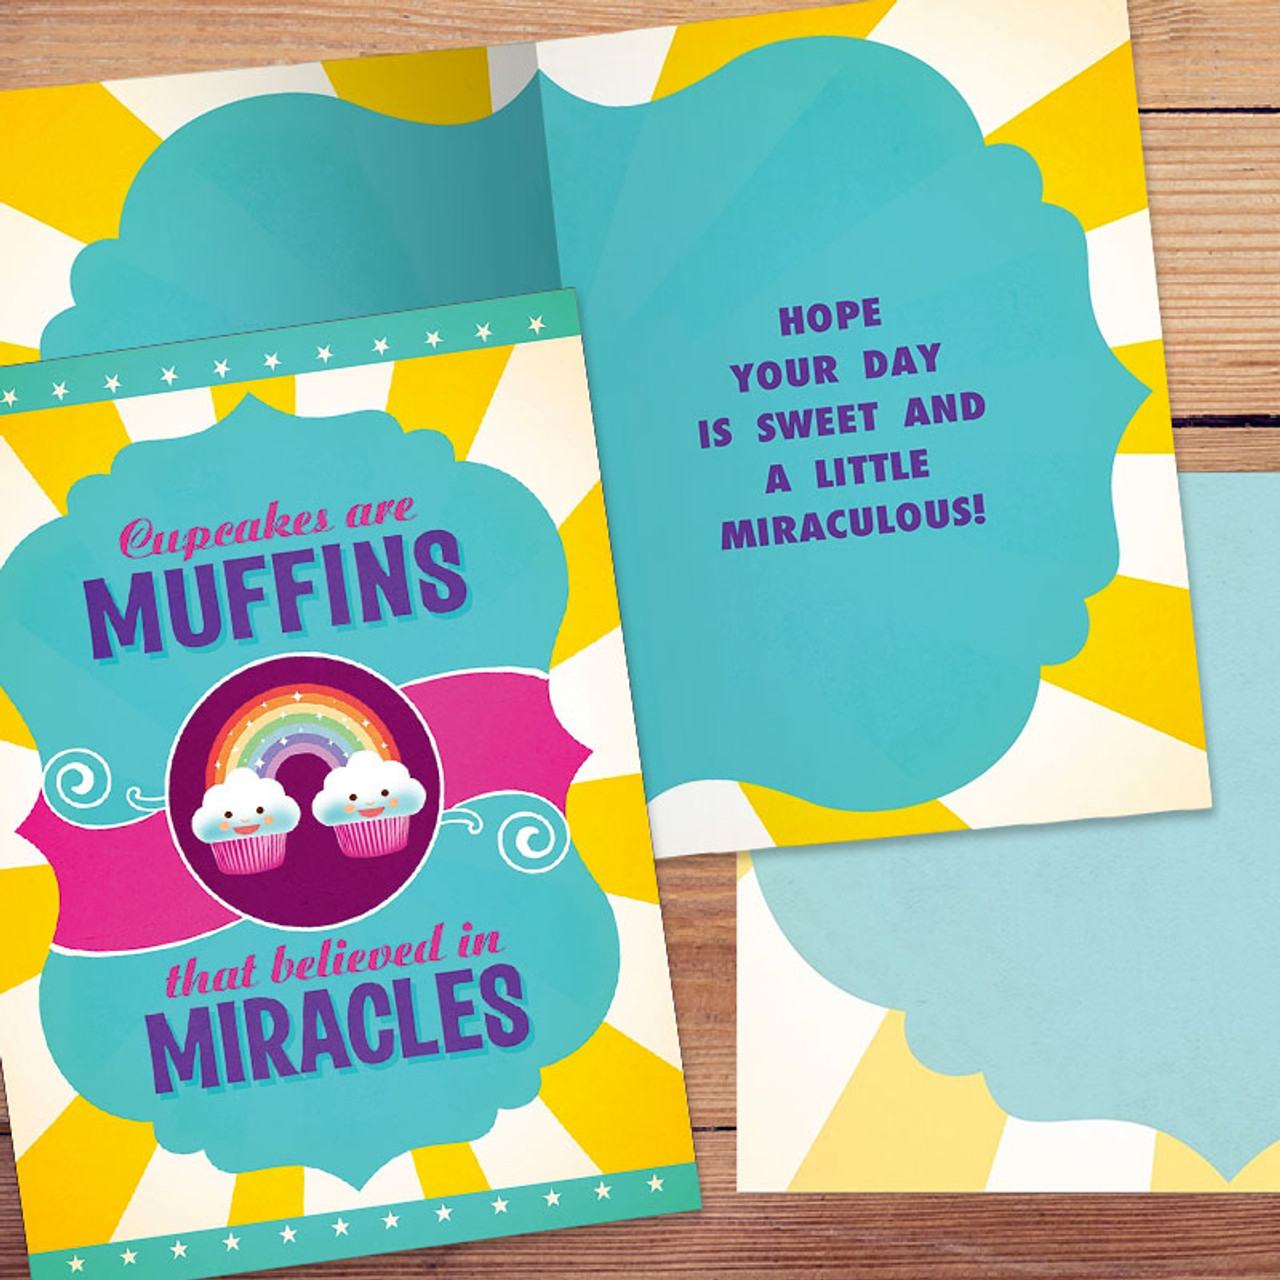 Cupcakes Are Muffins That Believed in Miracles Greeting Card